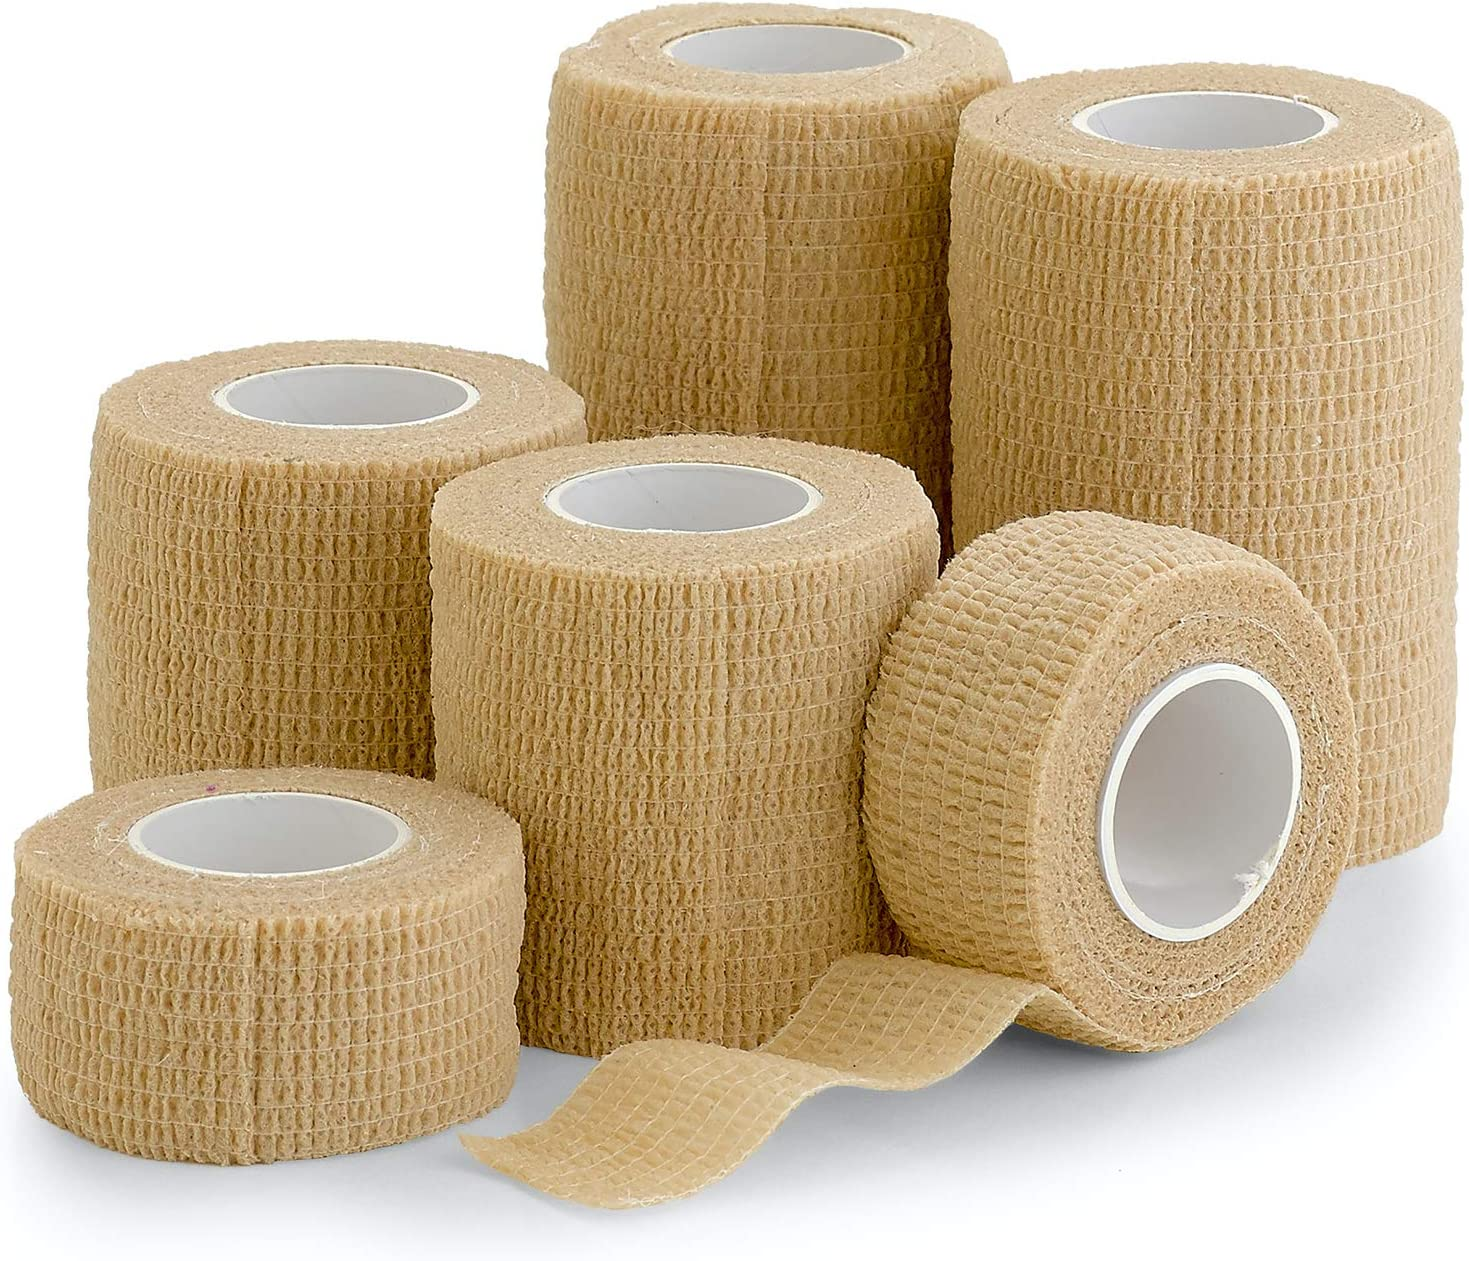 """6 Pack, Self Adherent Cohesive Tape - 1"""" 2"""" 3"""" x 5 Yards Combo Pack, (Light Tan Shade) Self Adhesive Bandage Rolls & Sports Athletic Wrap for Ankle, Wrist, Sprains"""